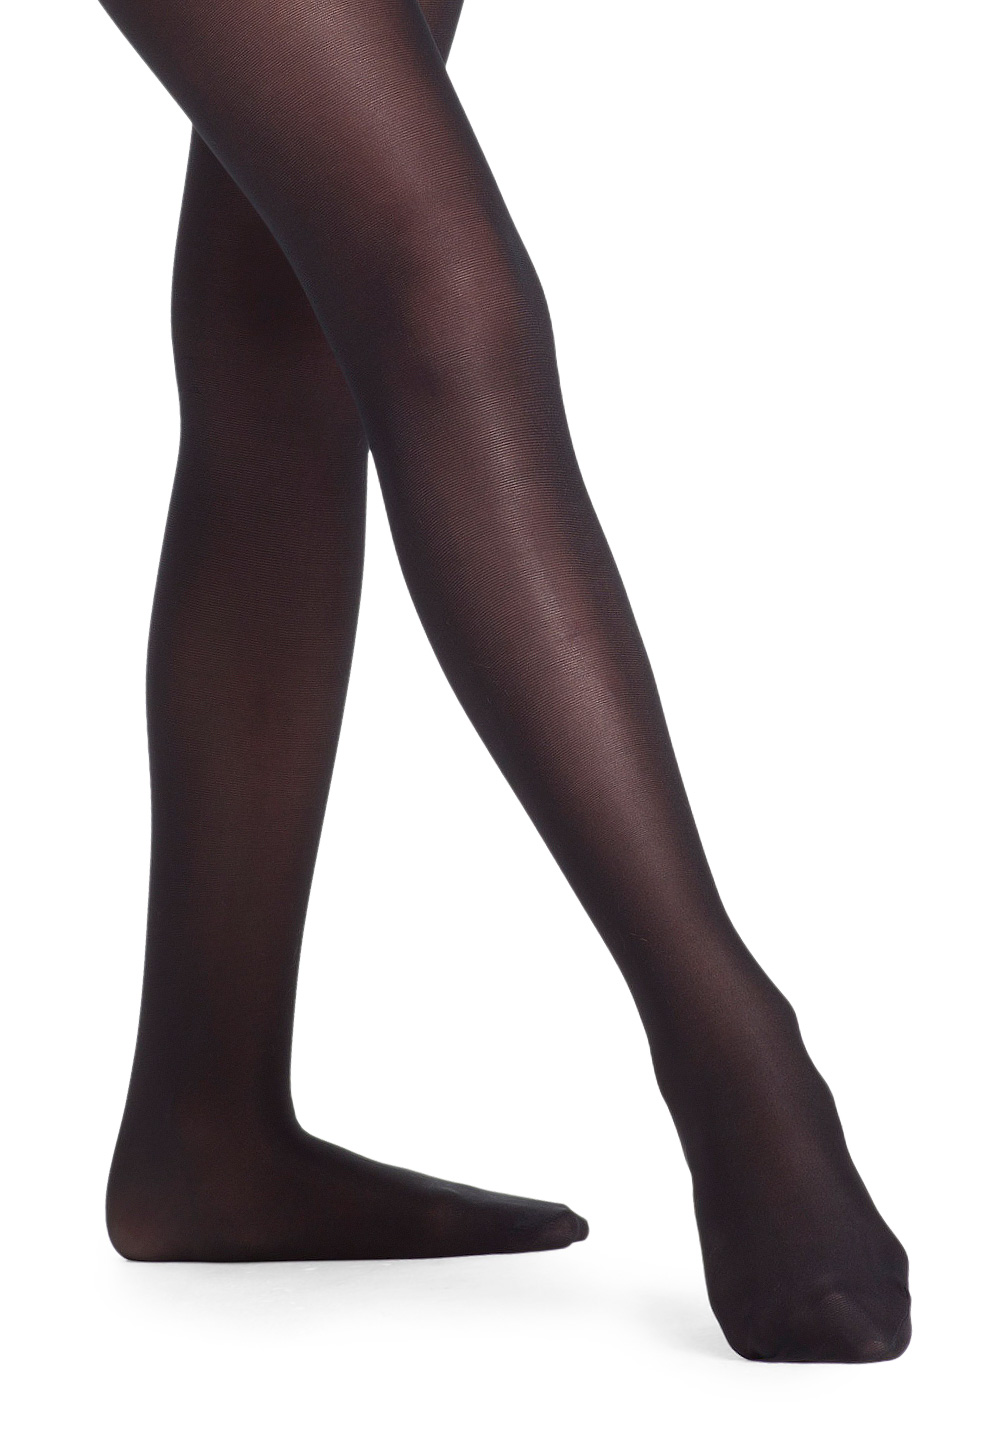 Children Tights – Danskin Girls Ultra Shimmery Footed Tights